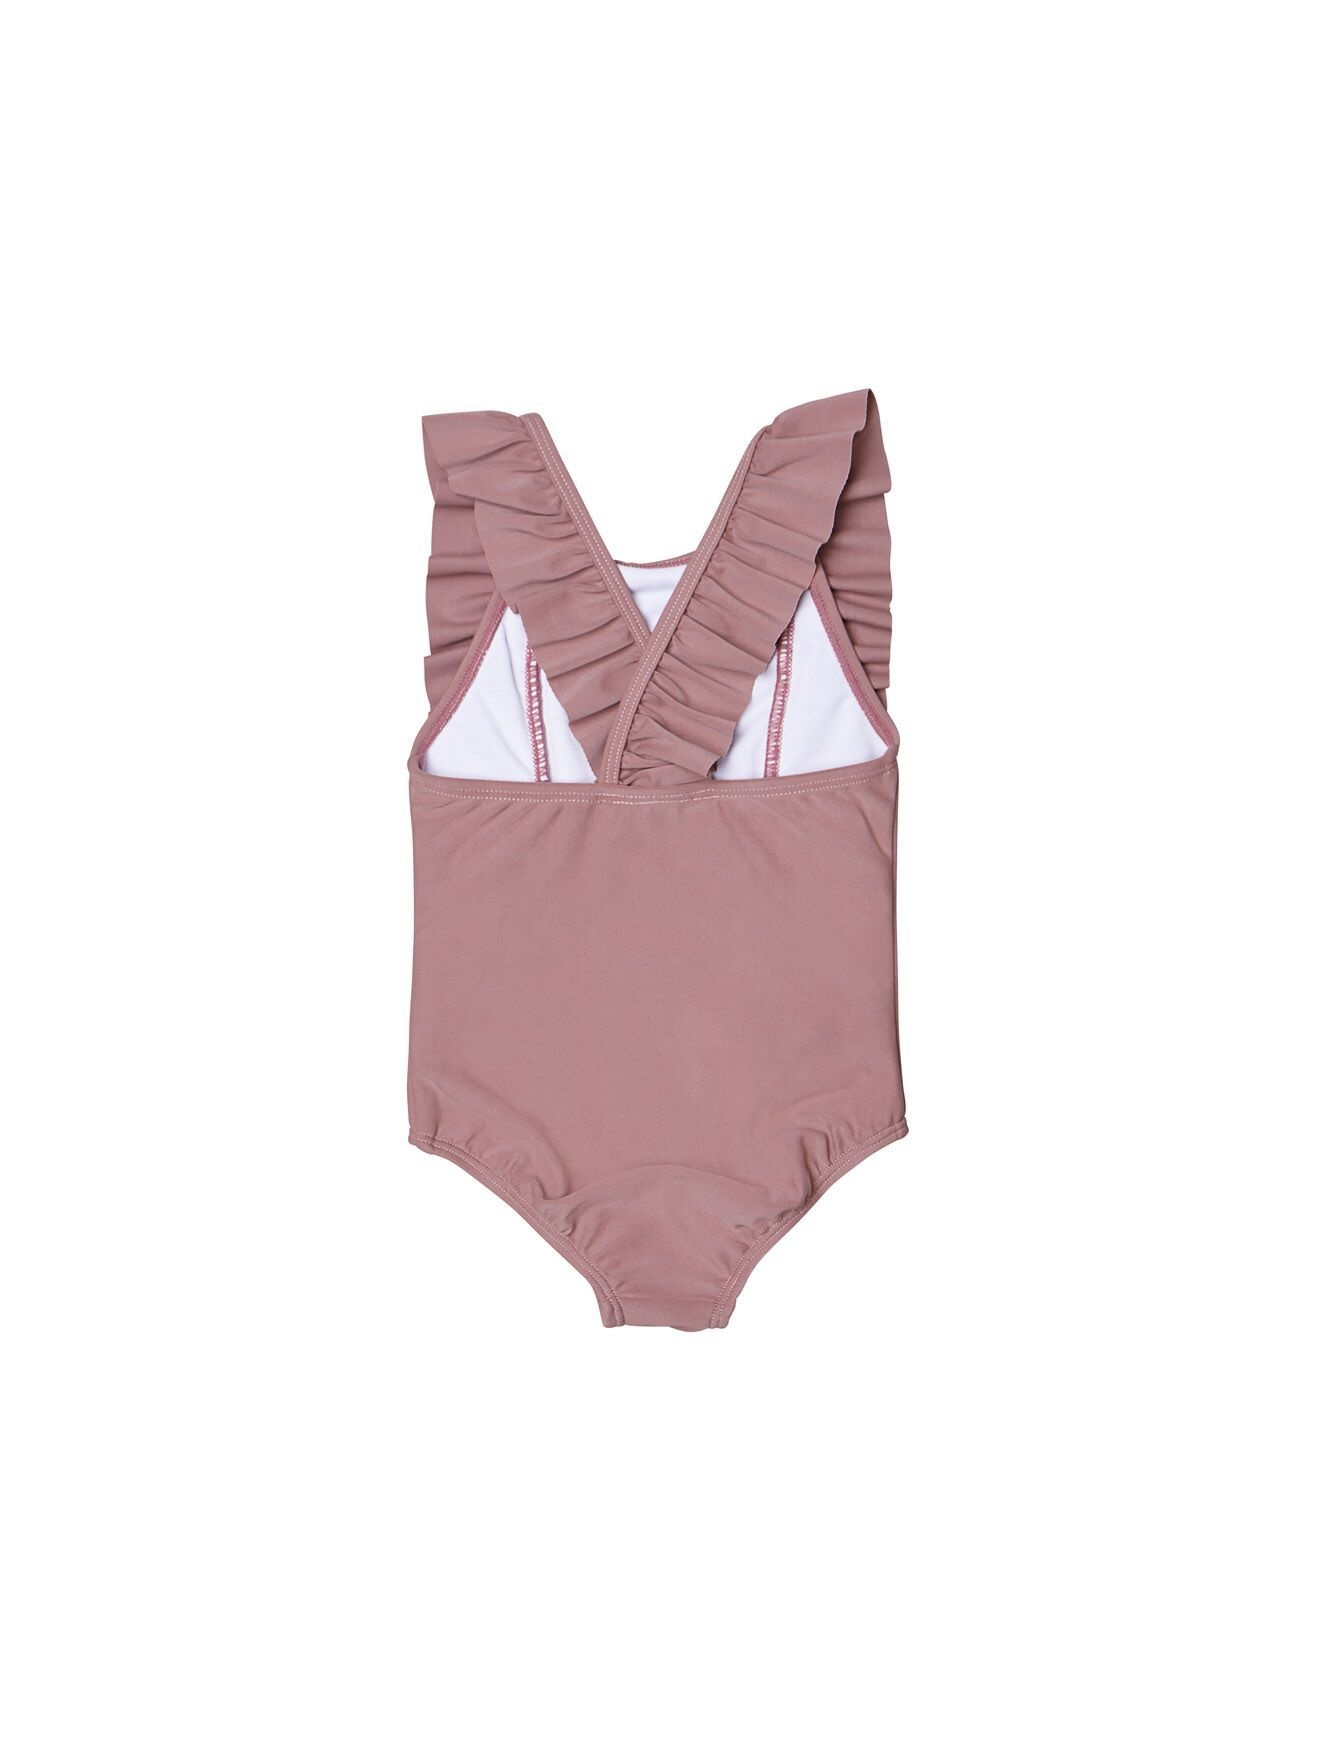 HUX BABY Berry Frill Swimsuit